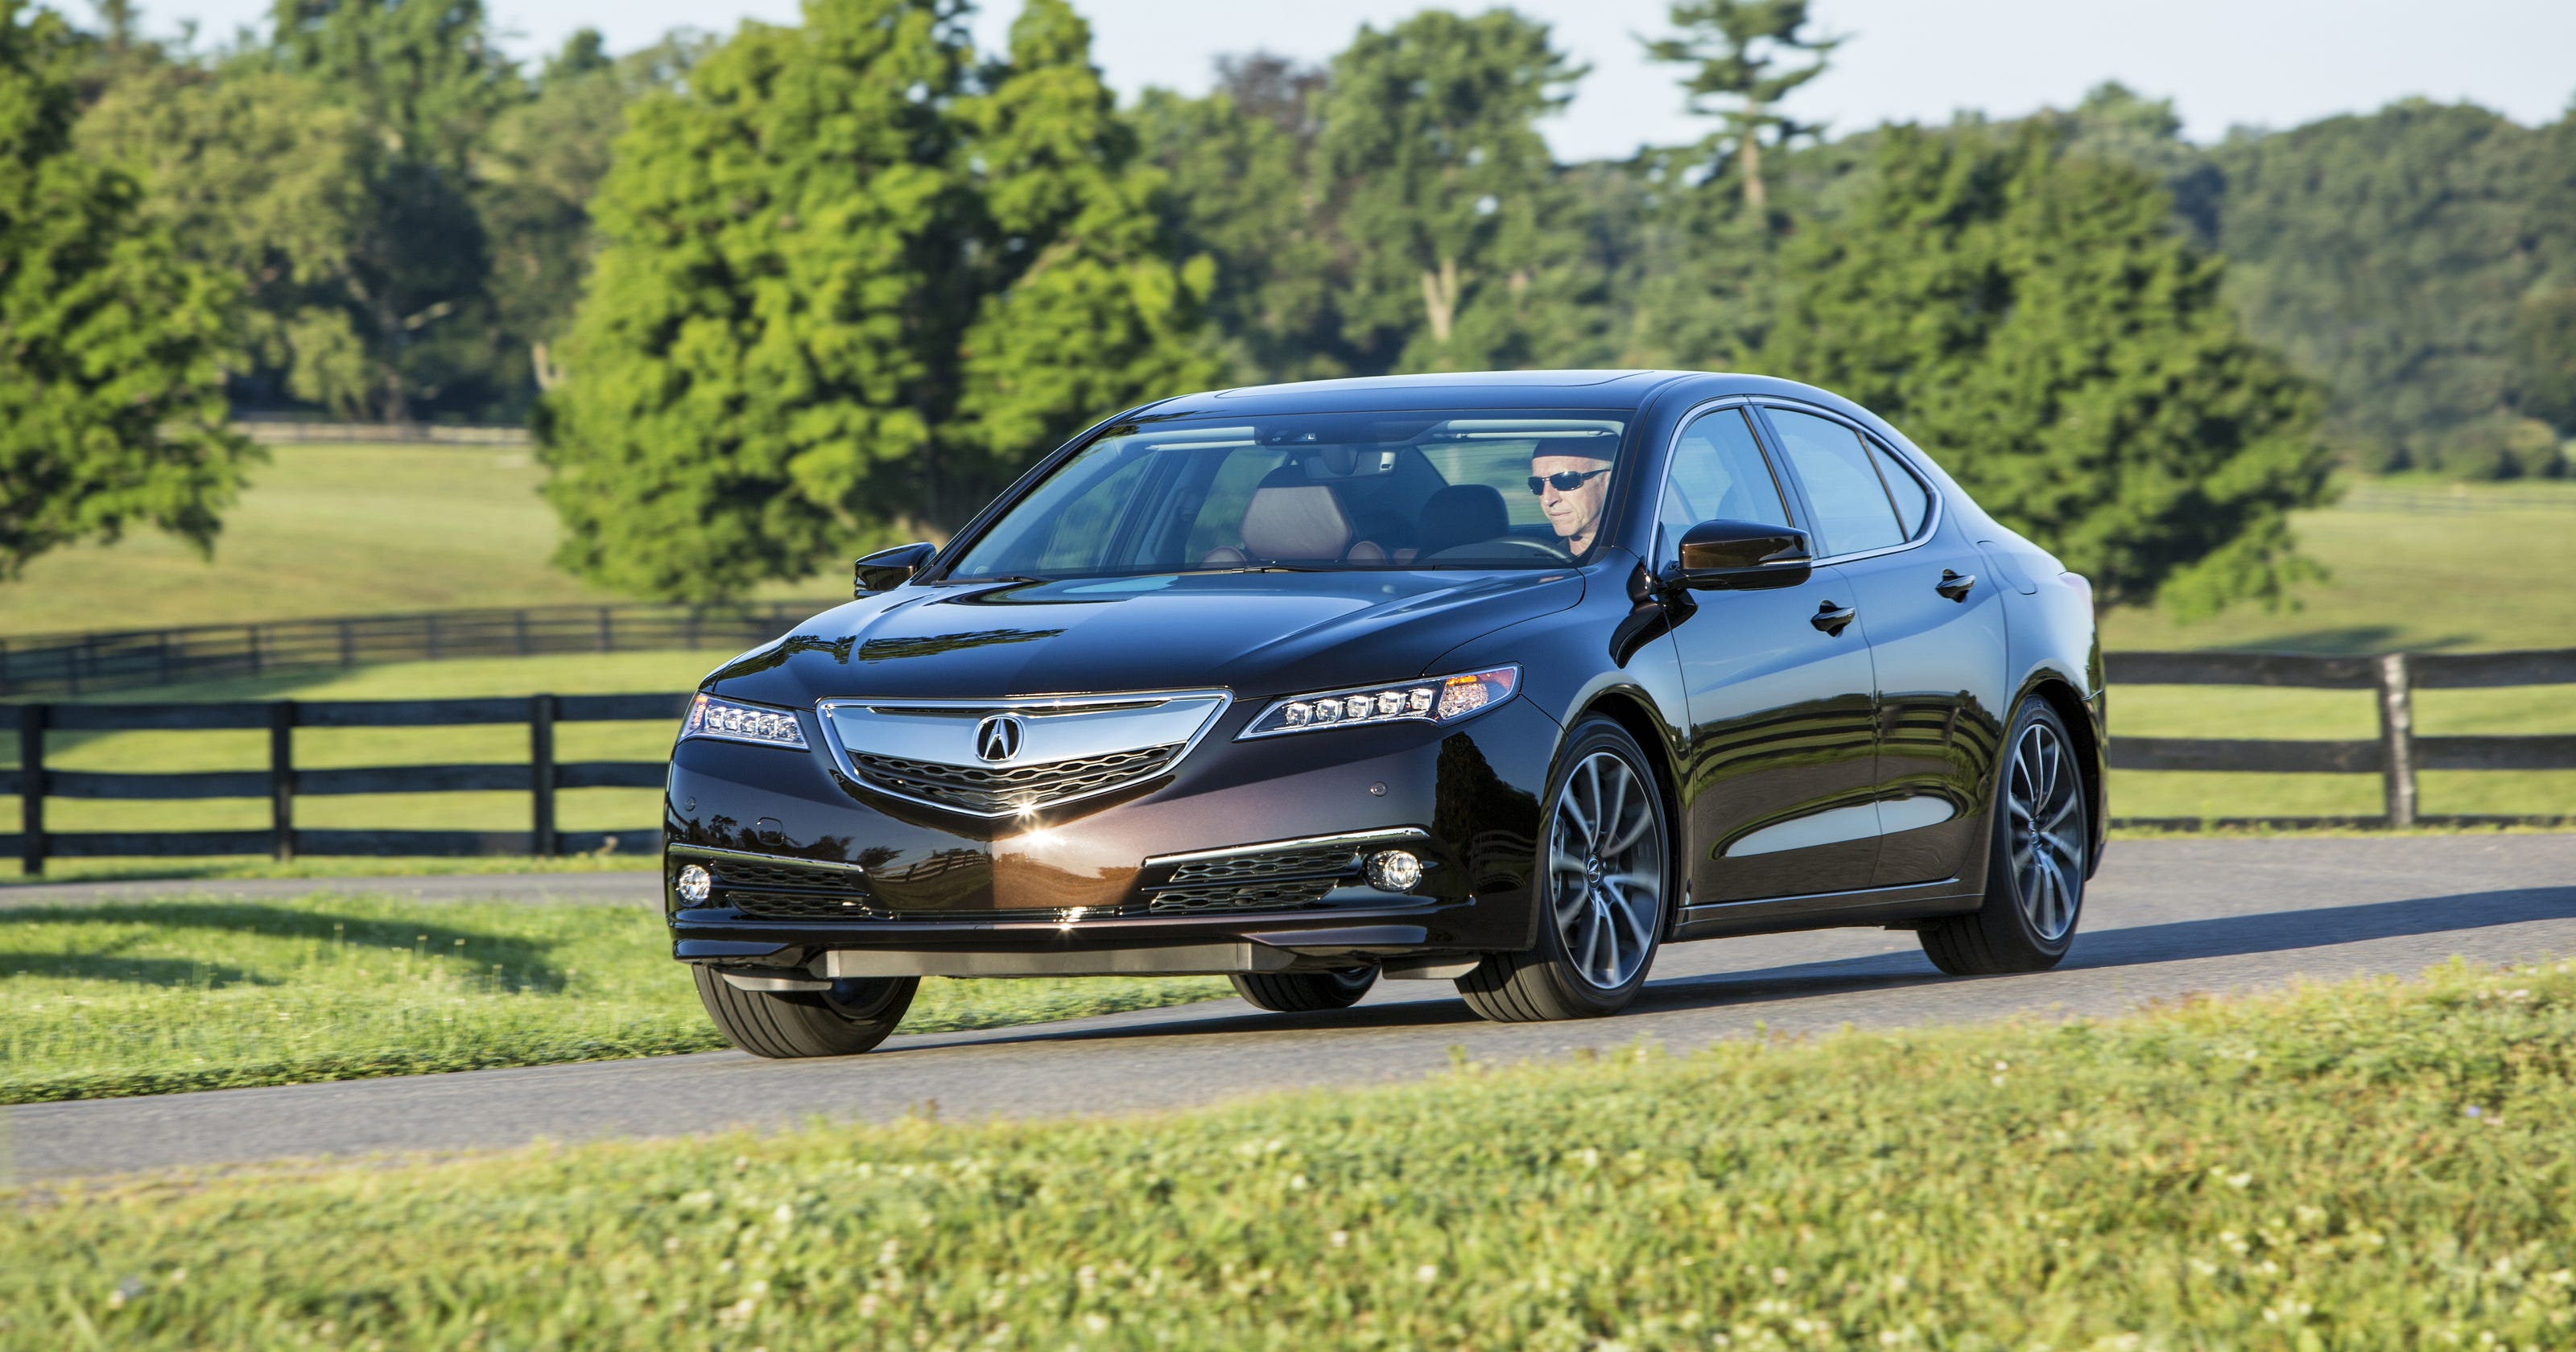 Test Drive: Smooth, quick Acura TLX is spot-on